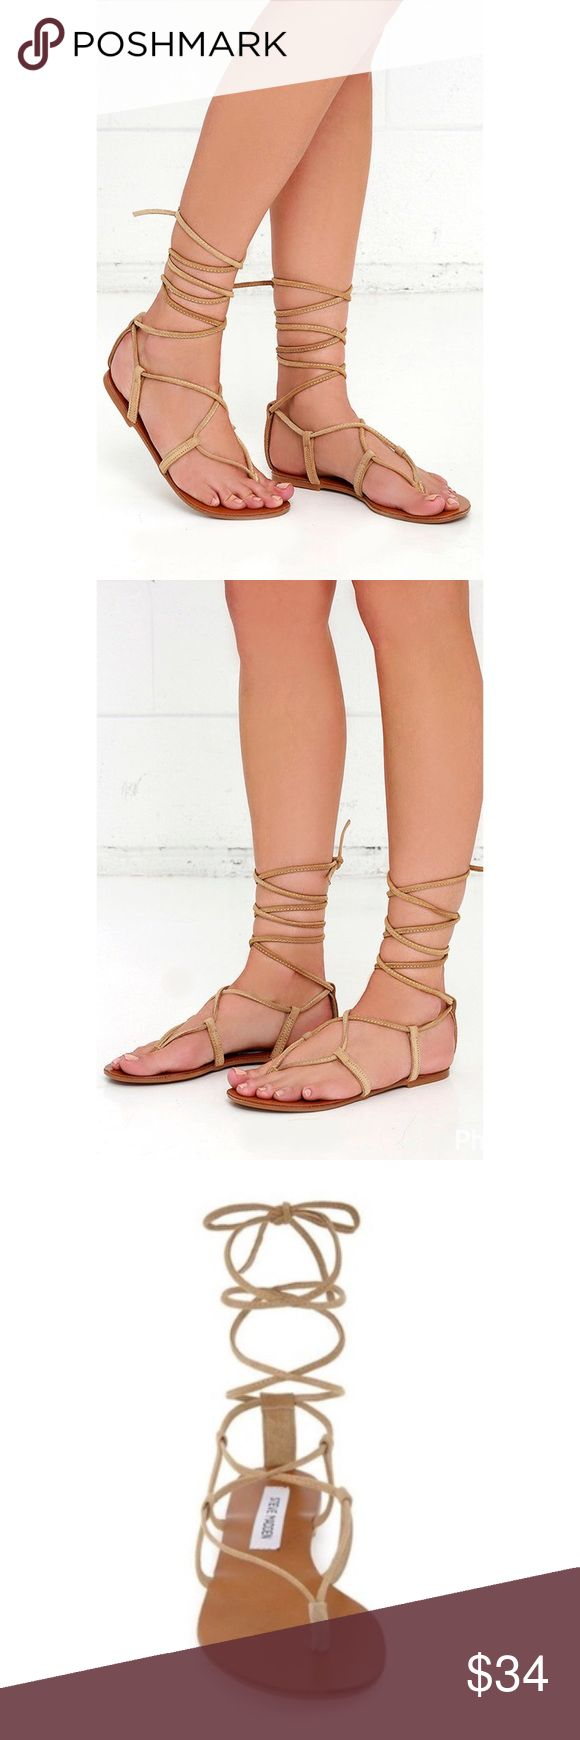 """NWT. Steve Madden lace up sandals NWT. Steve Madden lace up flats. About 0.25"""" platform.  Suede material. Tan color. True to size. Sorry, no trades. Like the item but not the price, feel free to make me a reasonable offer using the offer button. Steve Madden Shoes Sandals"""